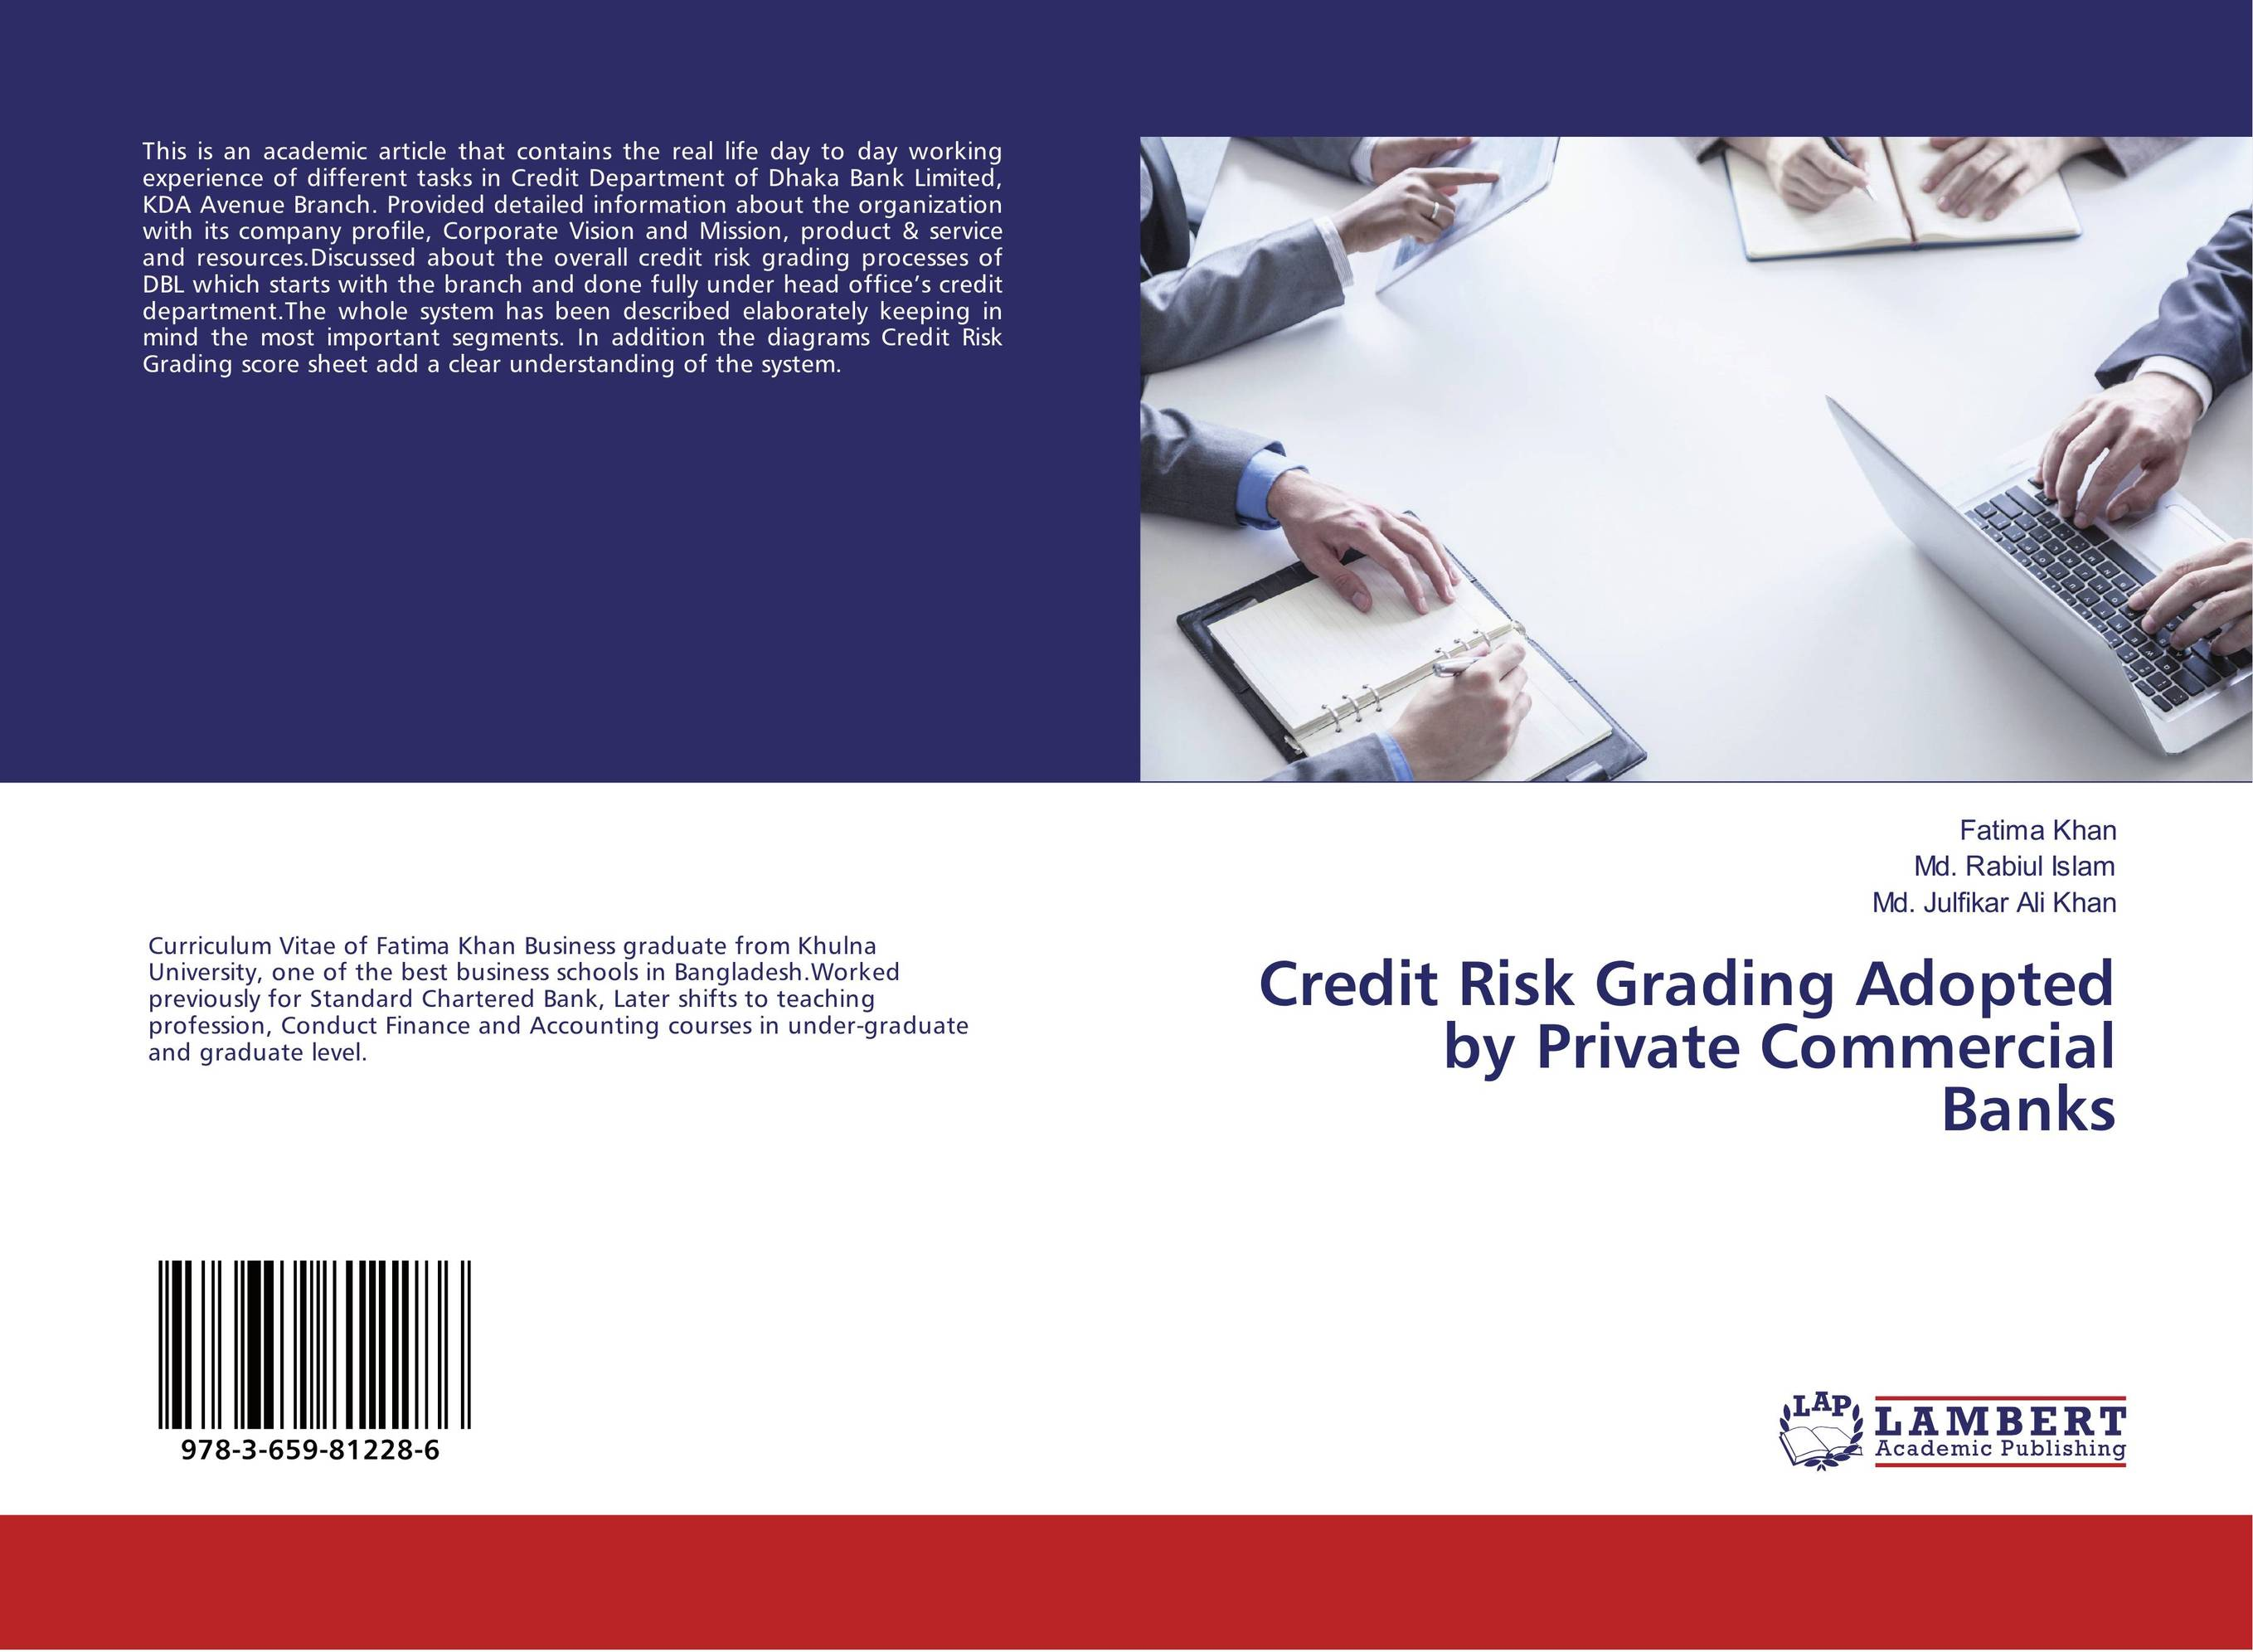 Credit Risk Grading Adopted by Private Commercial Banks credit and risk analysis by banks